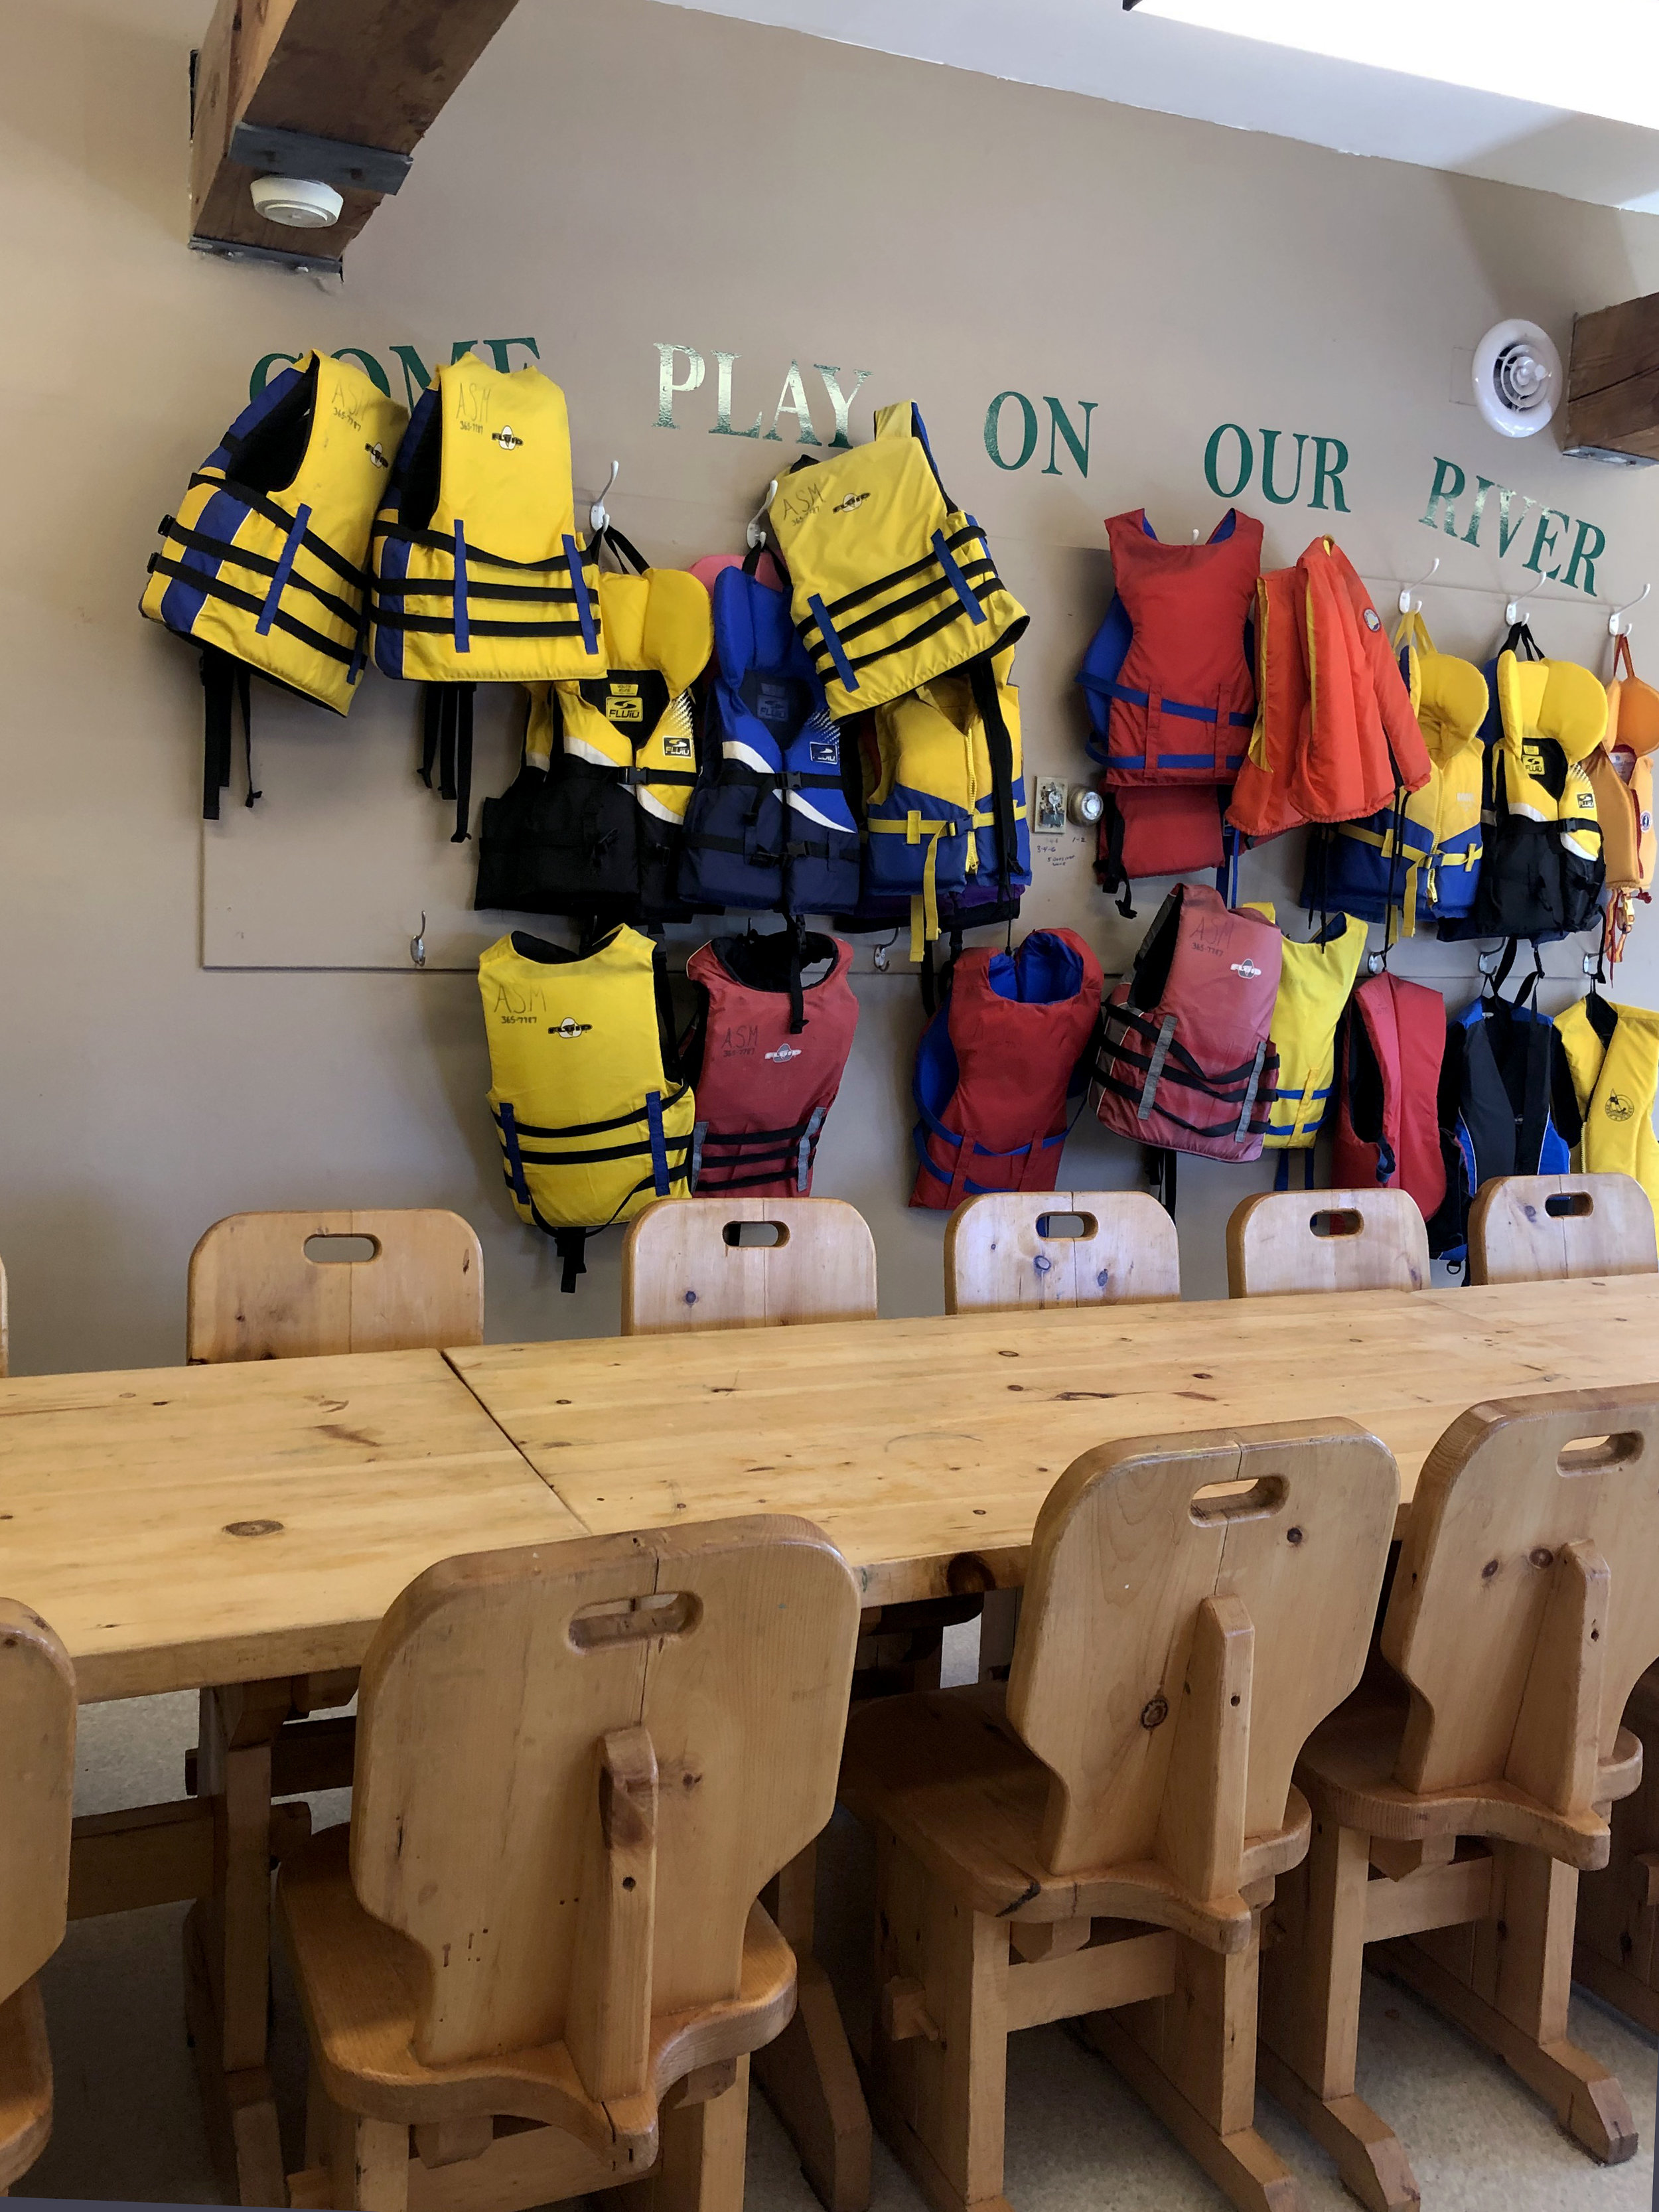 Come-Play-on-Our-River-lifejackets-room.jpg